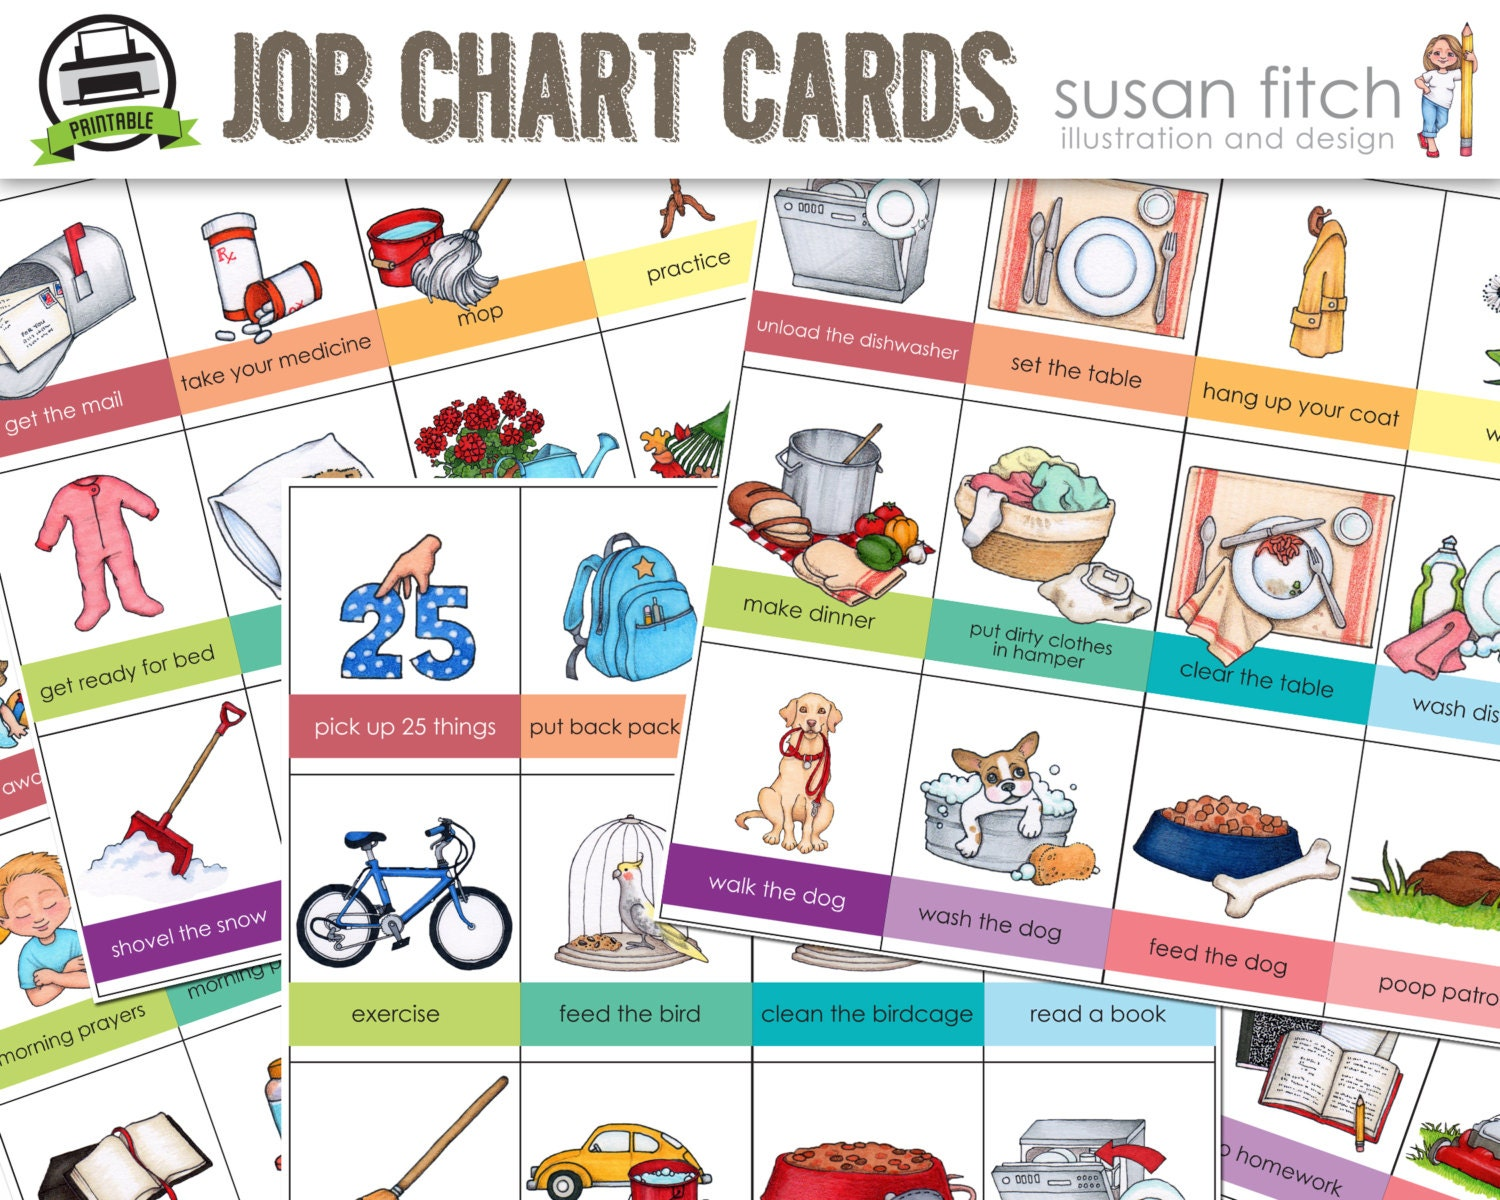 Sizzling image in printable job chart